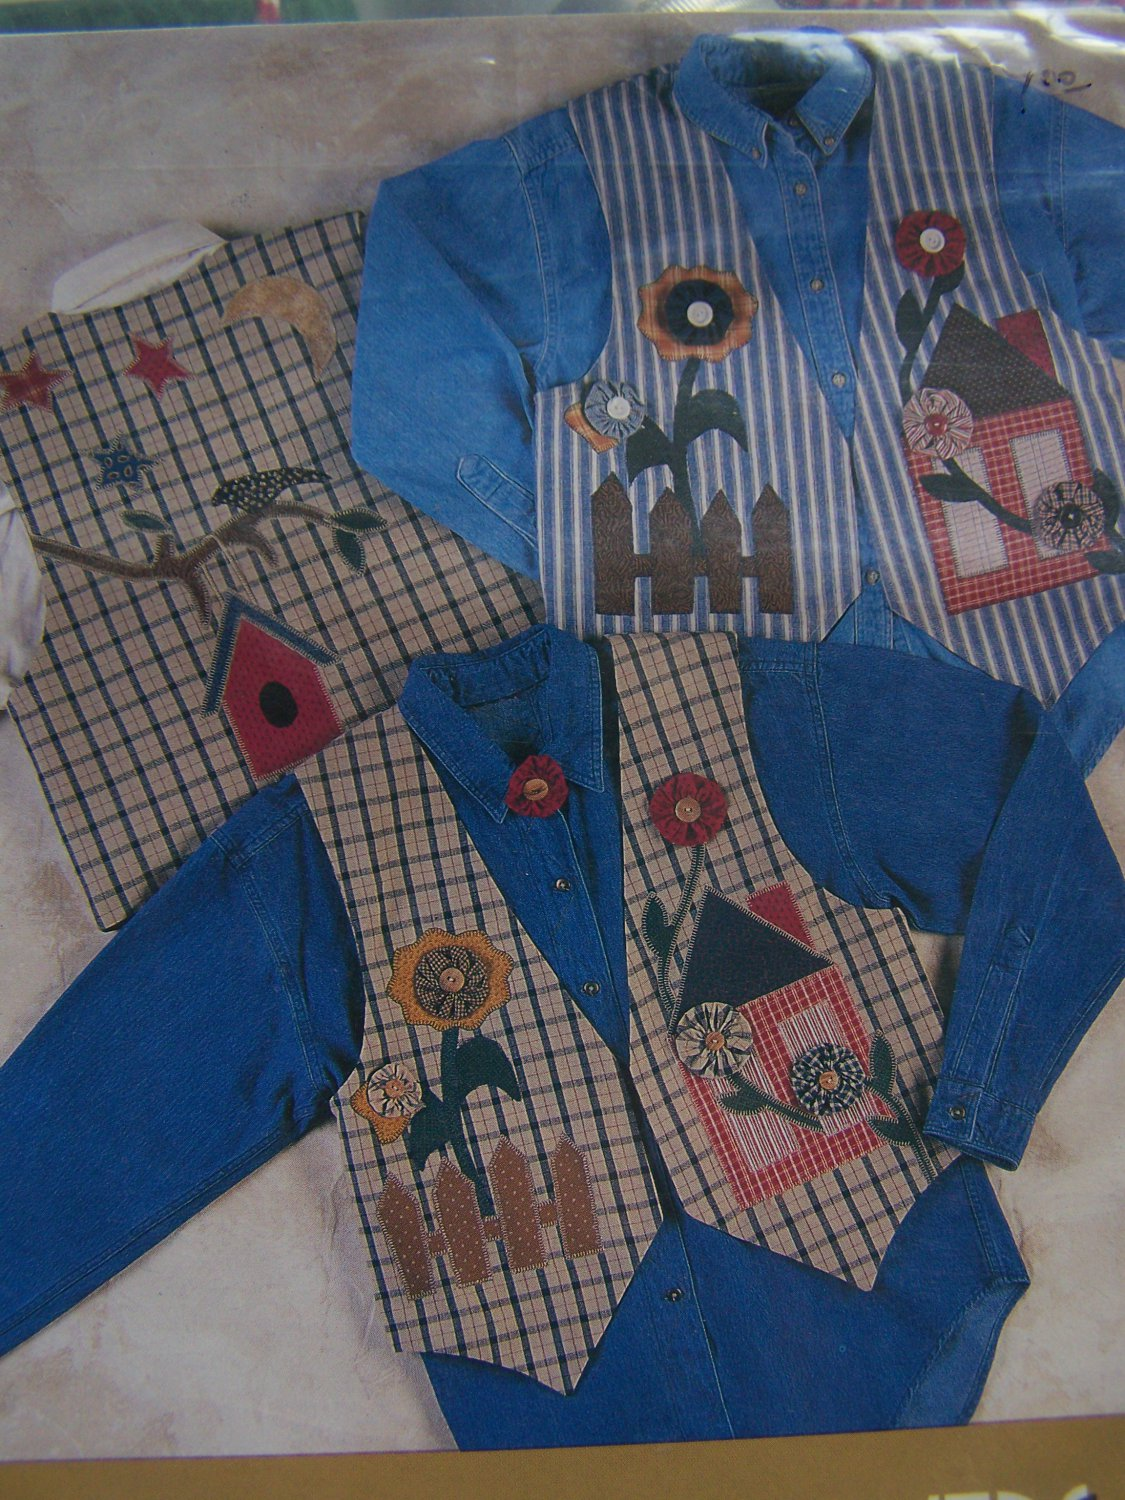 New Sewing Pattern Vest & Appliques Decorate Your own vest IJ314